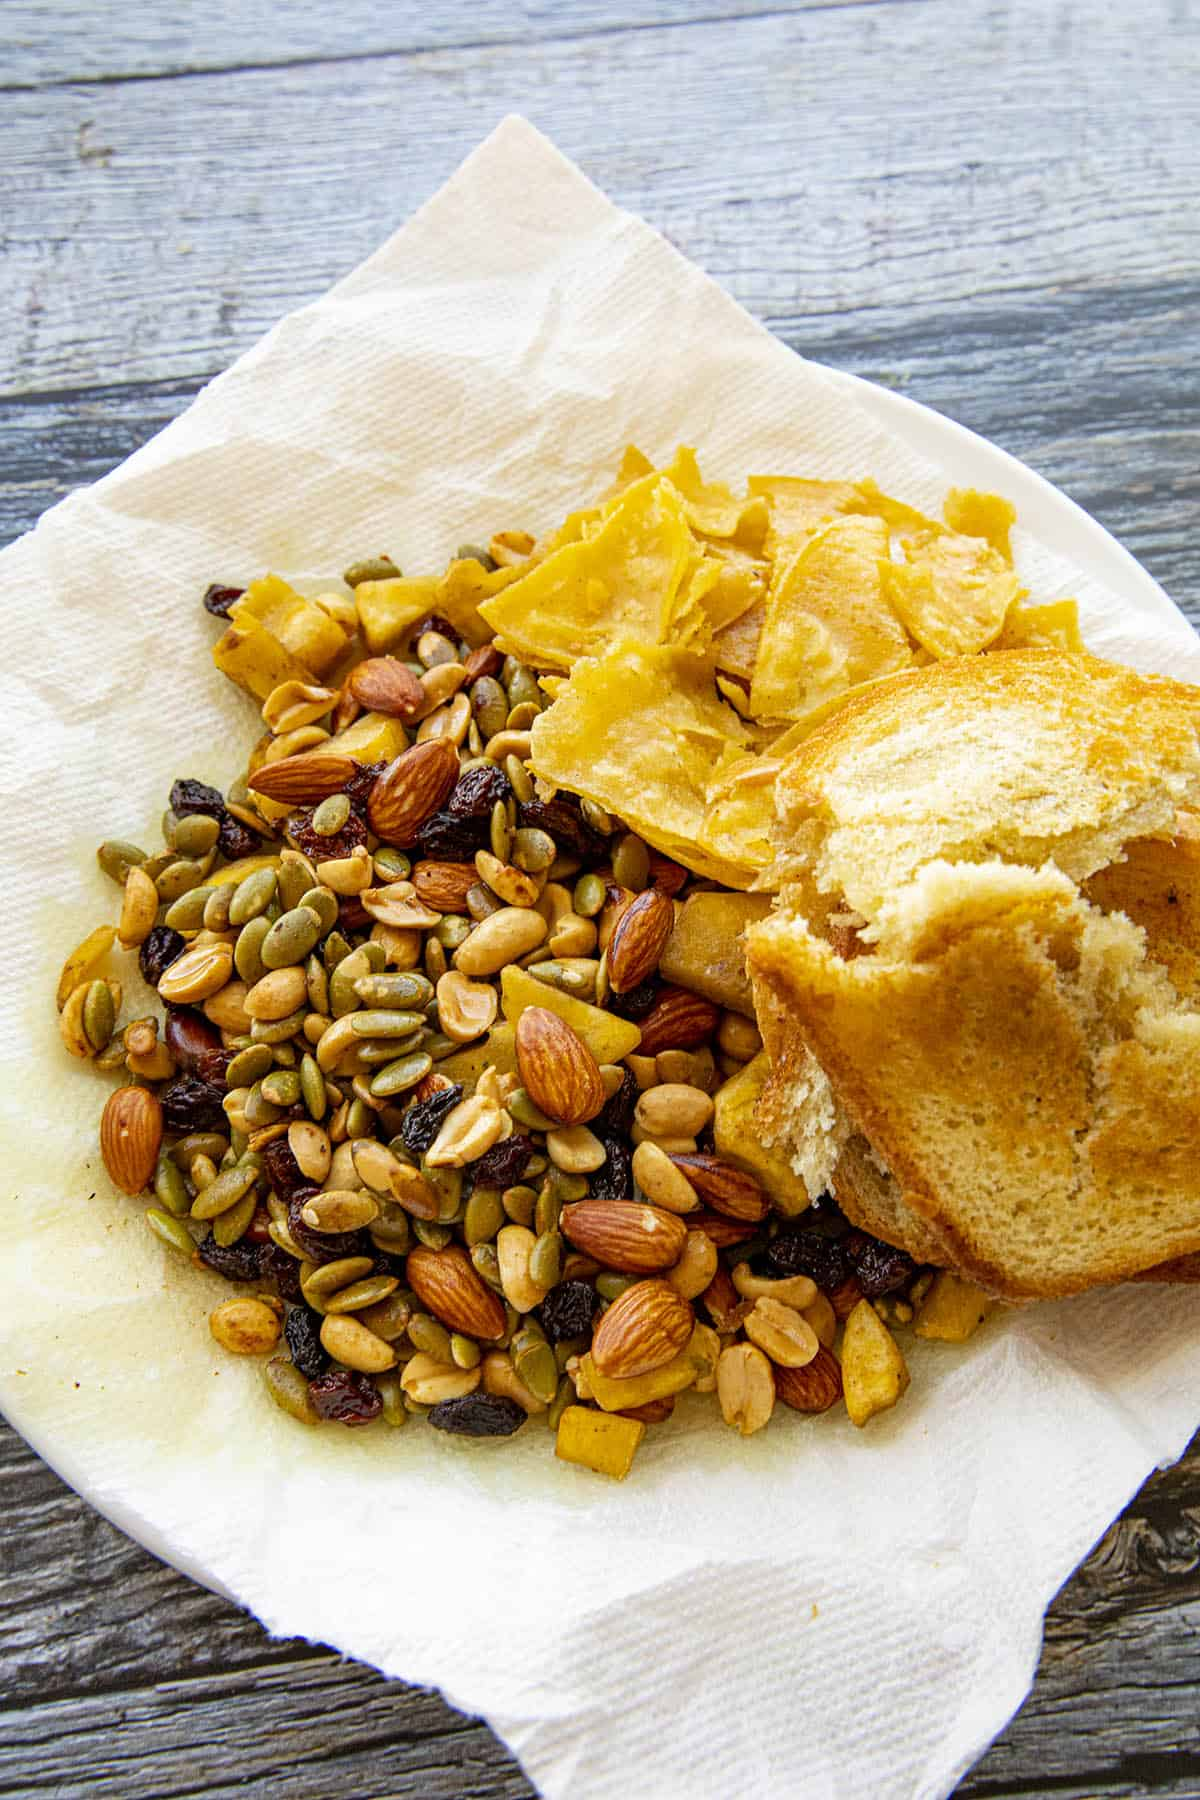 Fried nuts, bread and tortillas for making mole poblano